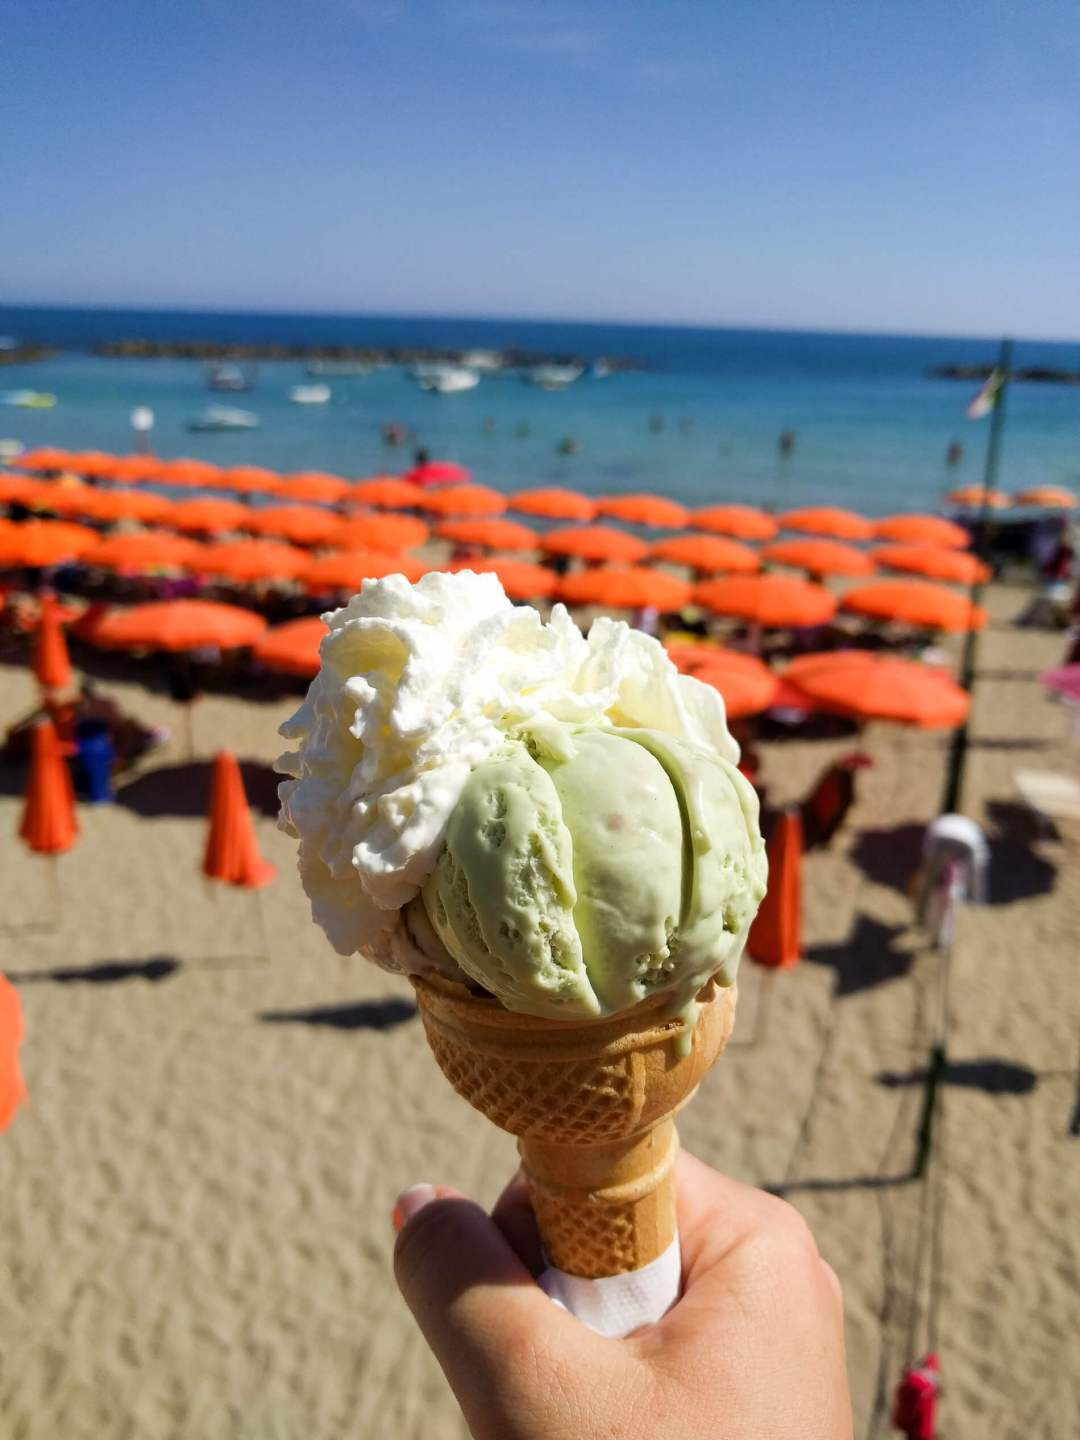 A close-up photo of gelato at the beach in Santa Marinella, Italy